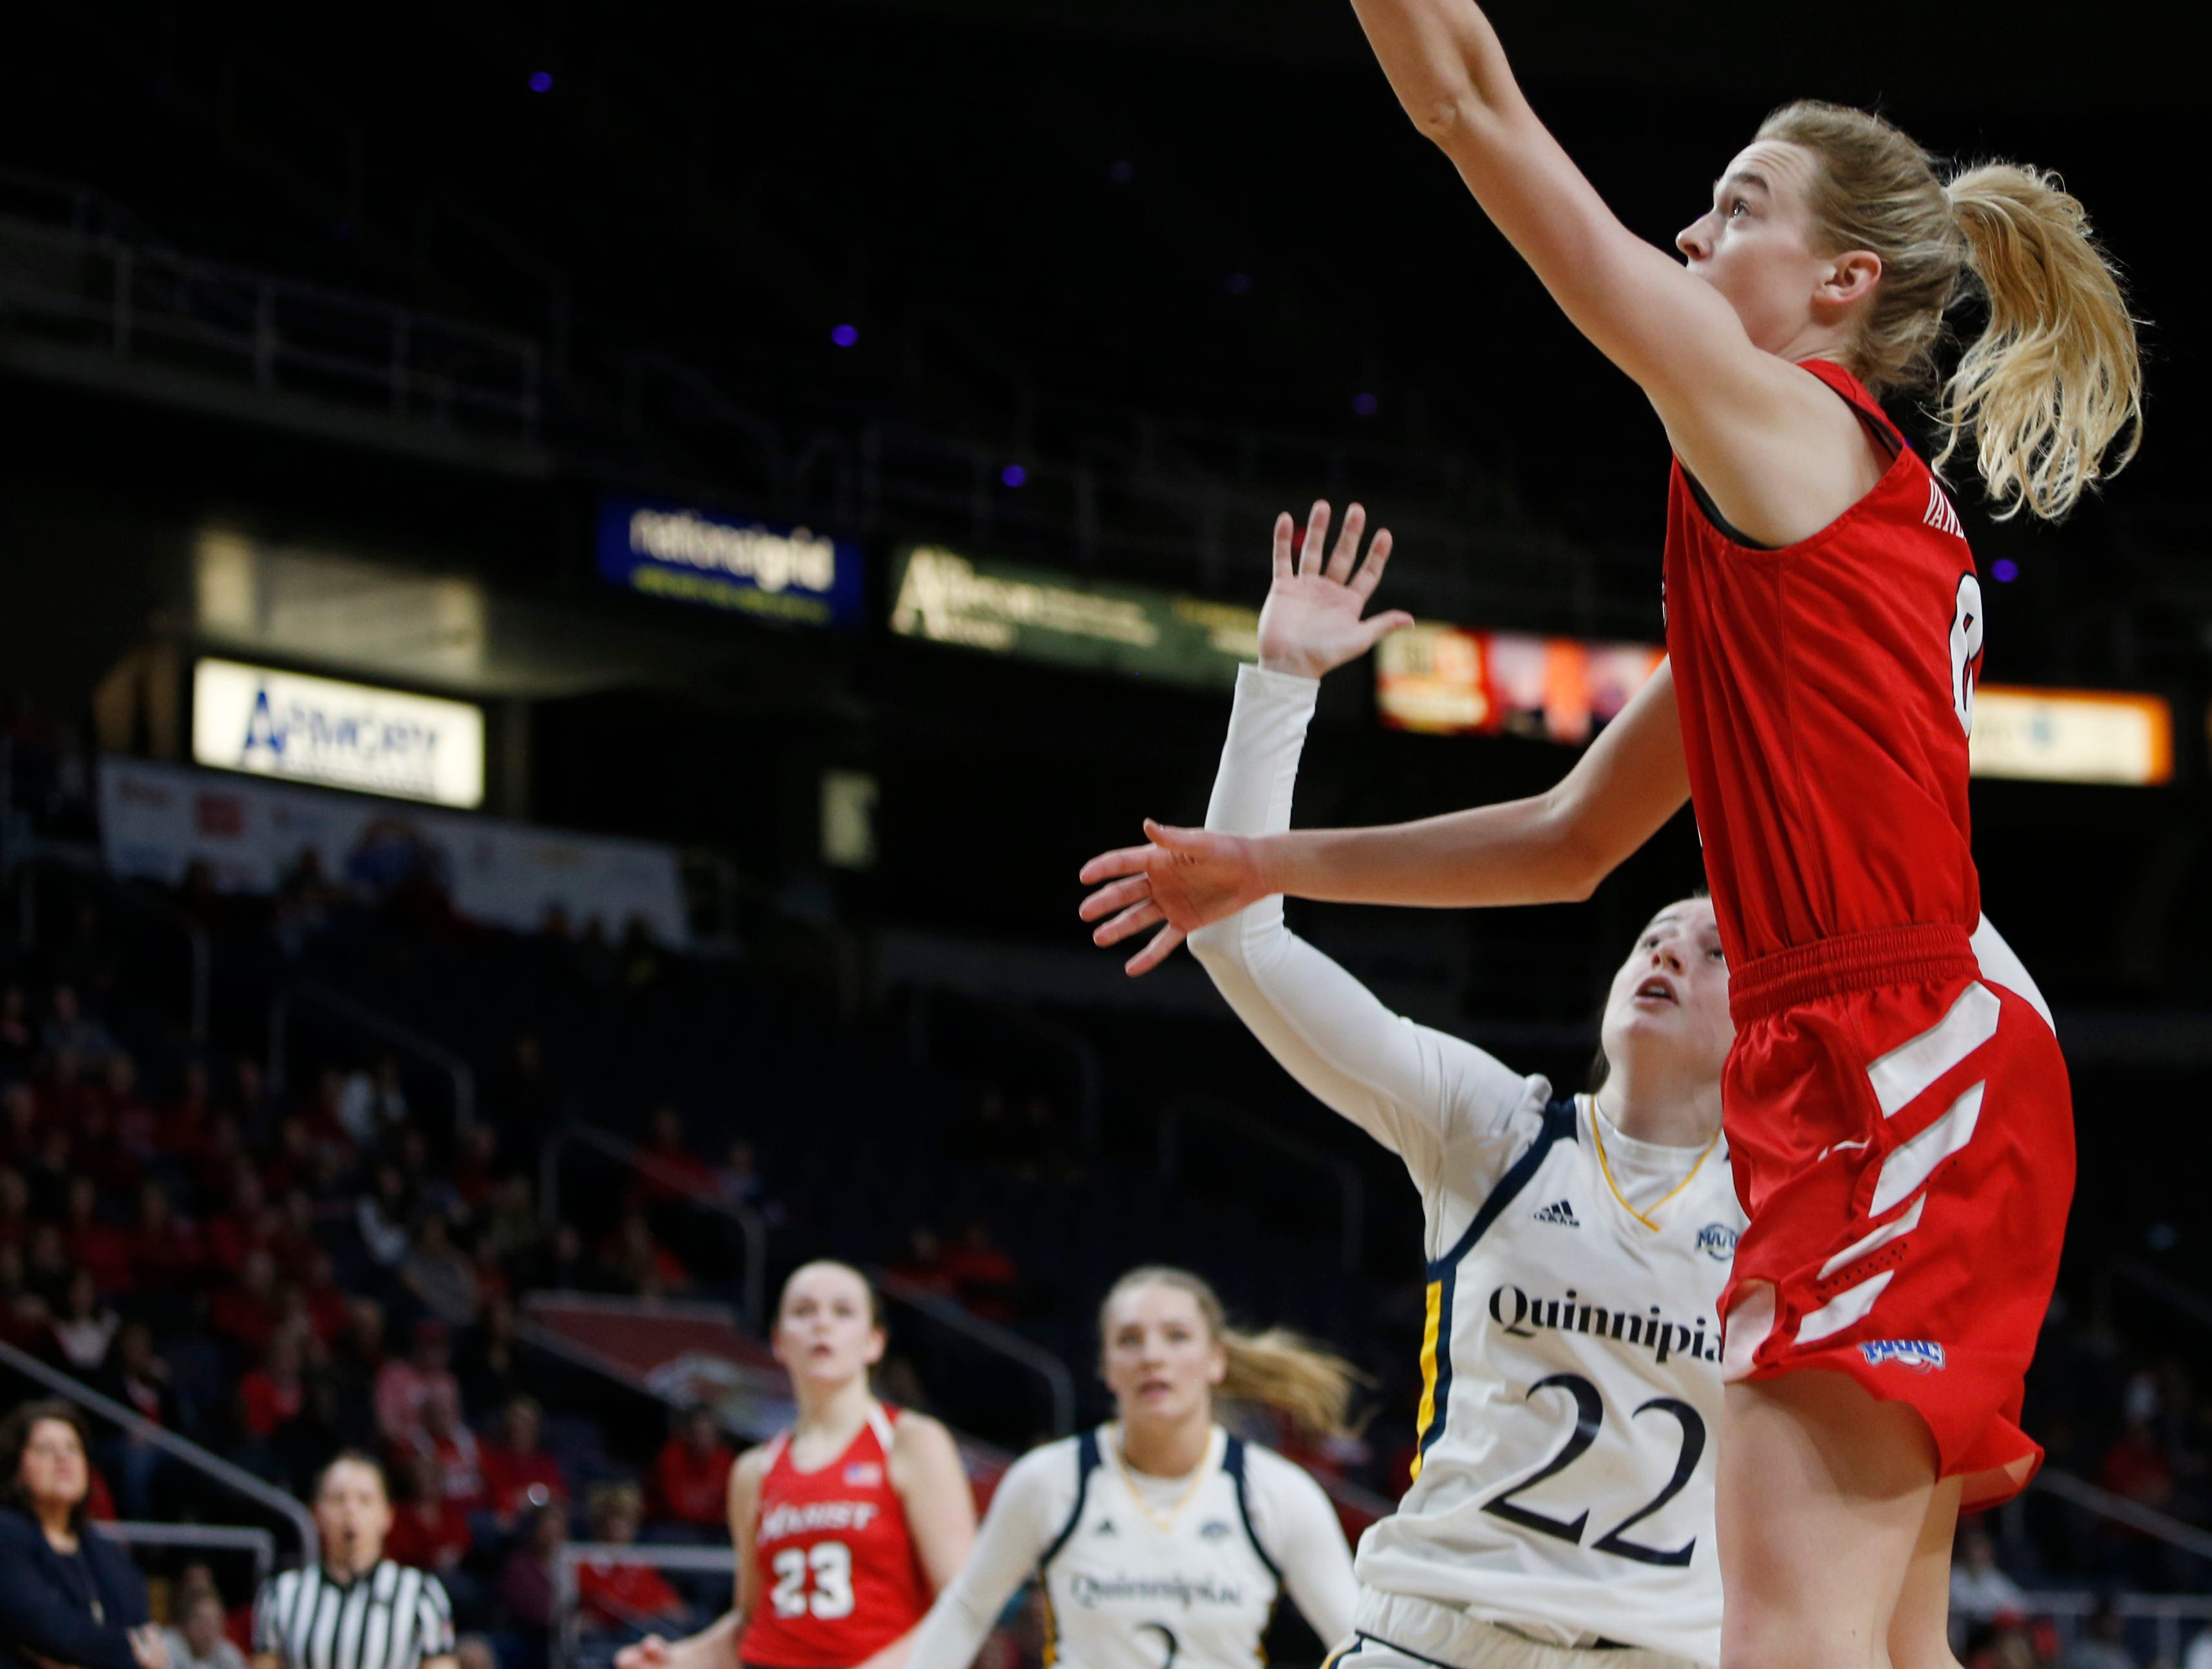 Marist's Grace Vander Weide goes for a layup over Quinnipiac's Mackenzie DeWees during the MAAC championship in Albany on March 11 2019.